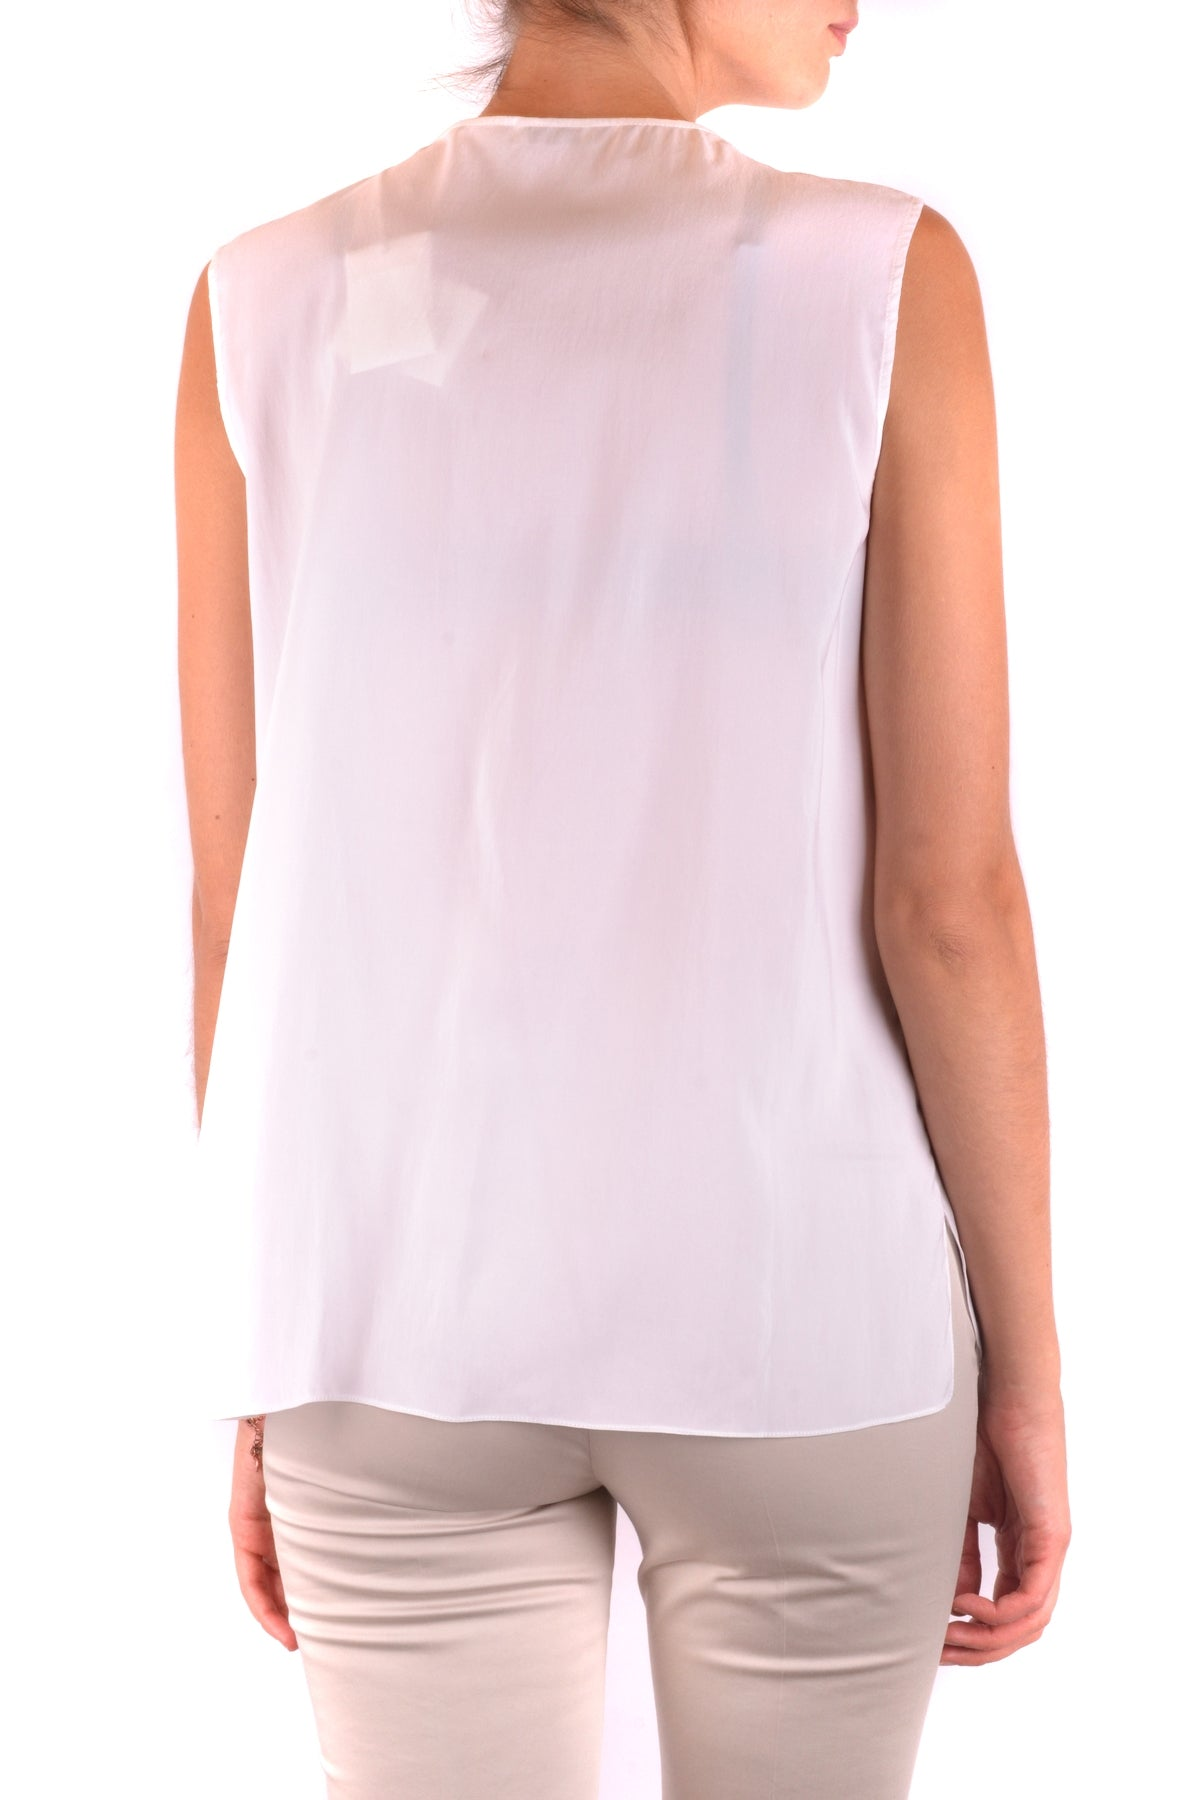 Tanktop Brunello Cucinelli-Top - WOMAN-Product Details Season: Spring / SummerTerms: New With LabelMain Color: WhiteGender: WomanMade In: ItalyManufacturer Part Number: Mh910F4101 C159Size: IntYear: 2018Clothing Type: TopComposition: Silk 100%-Keyomi-Sook